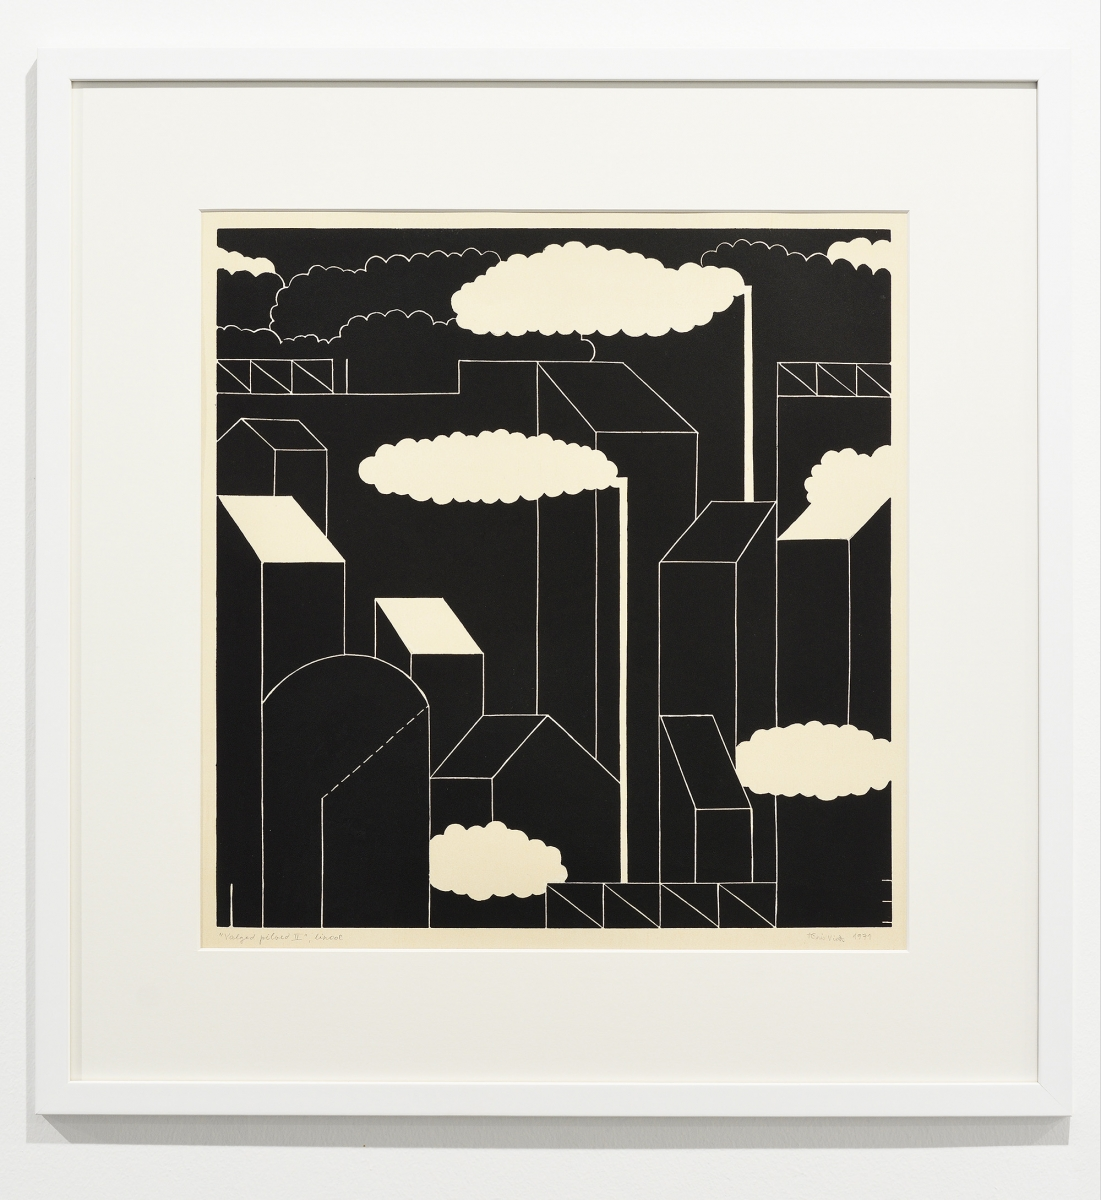 Tõnis Vint, White clouds II, 1971